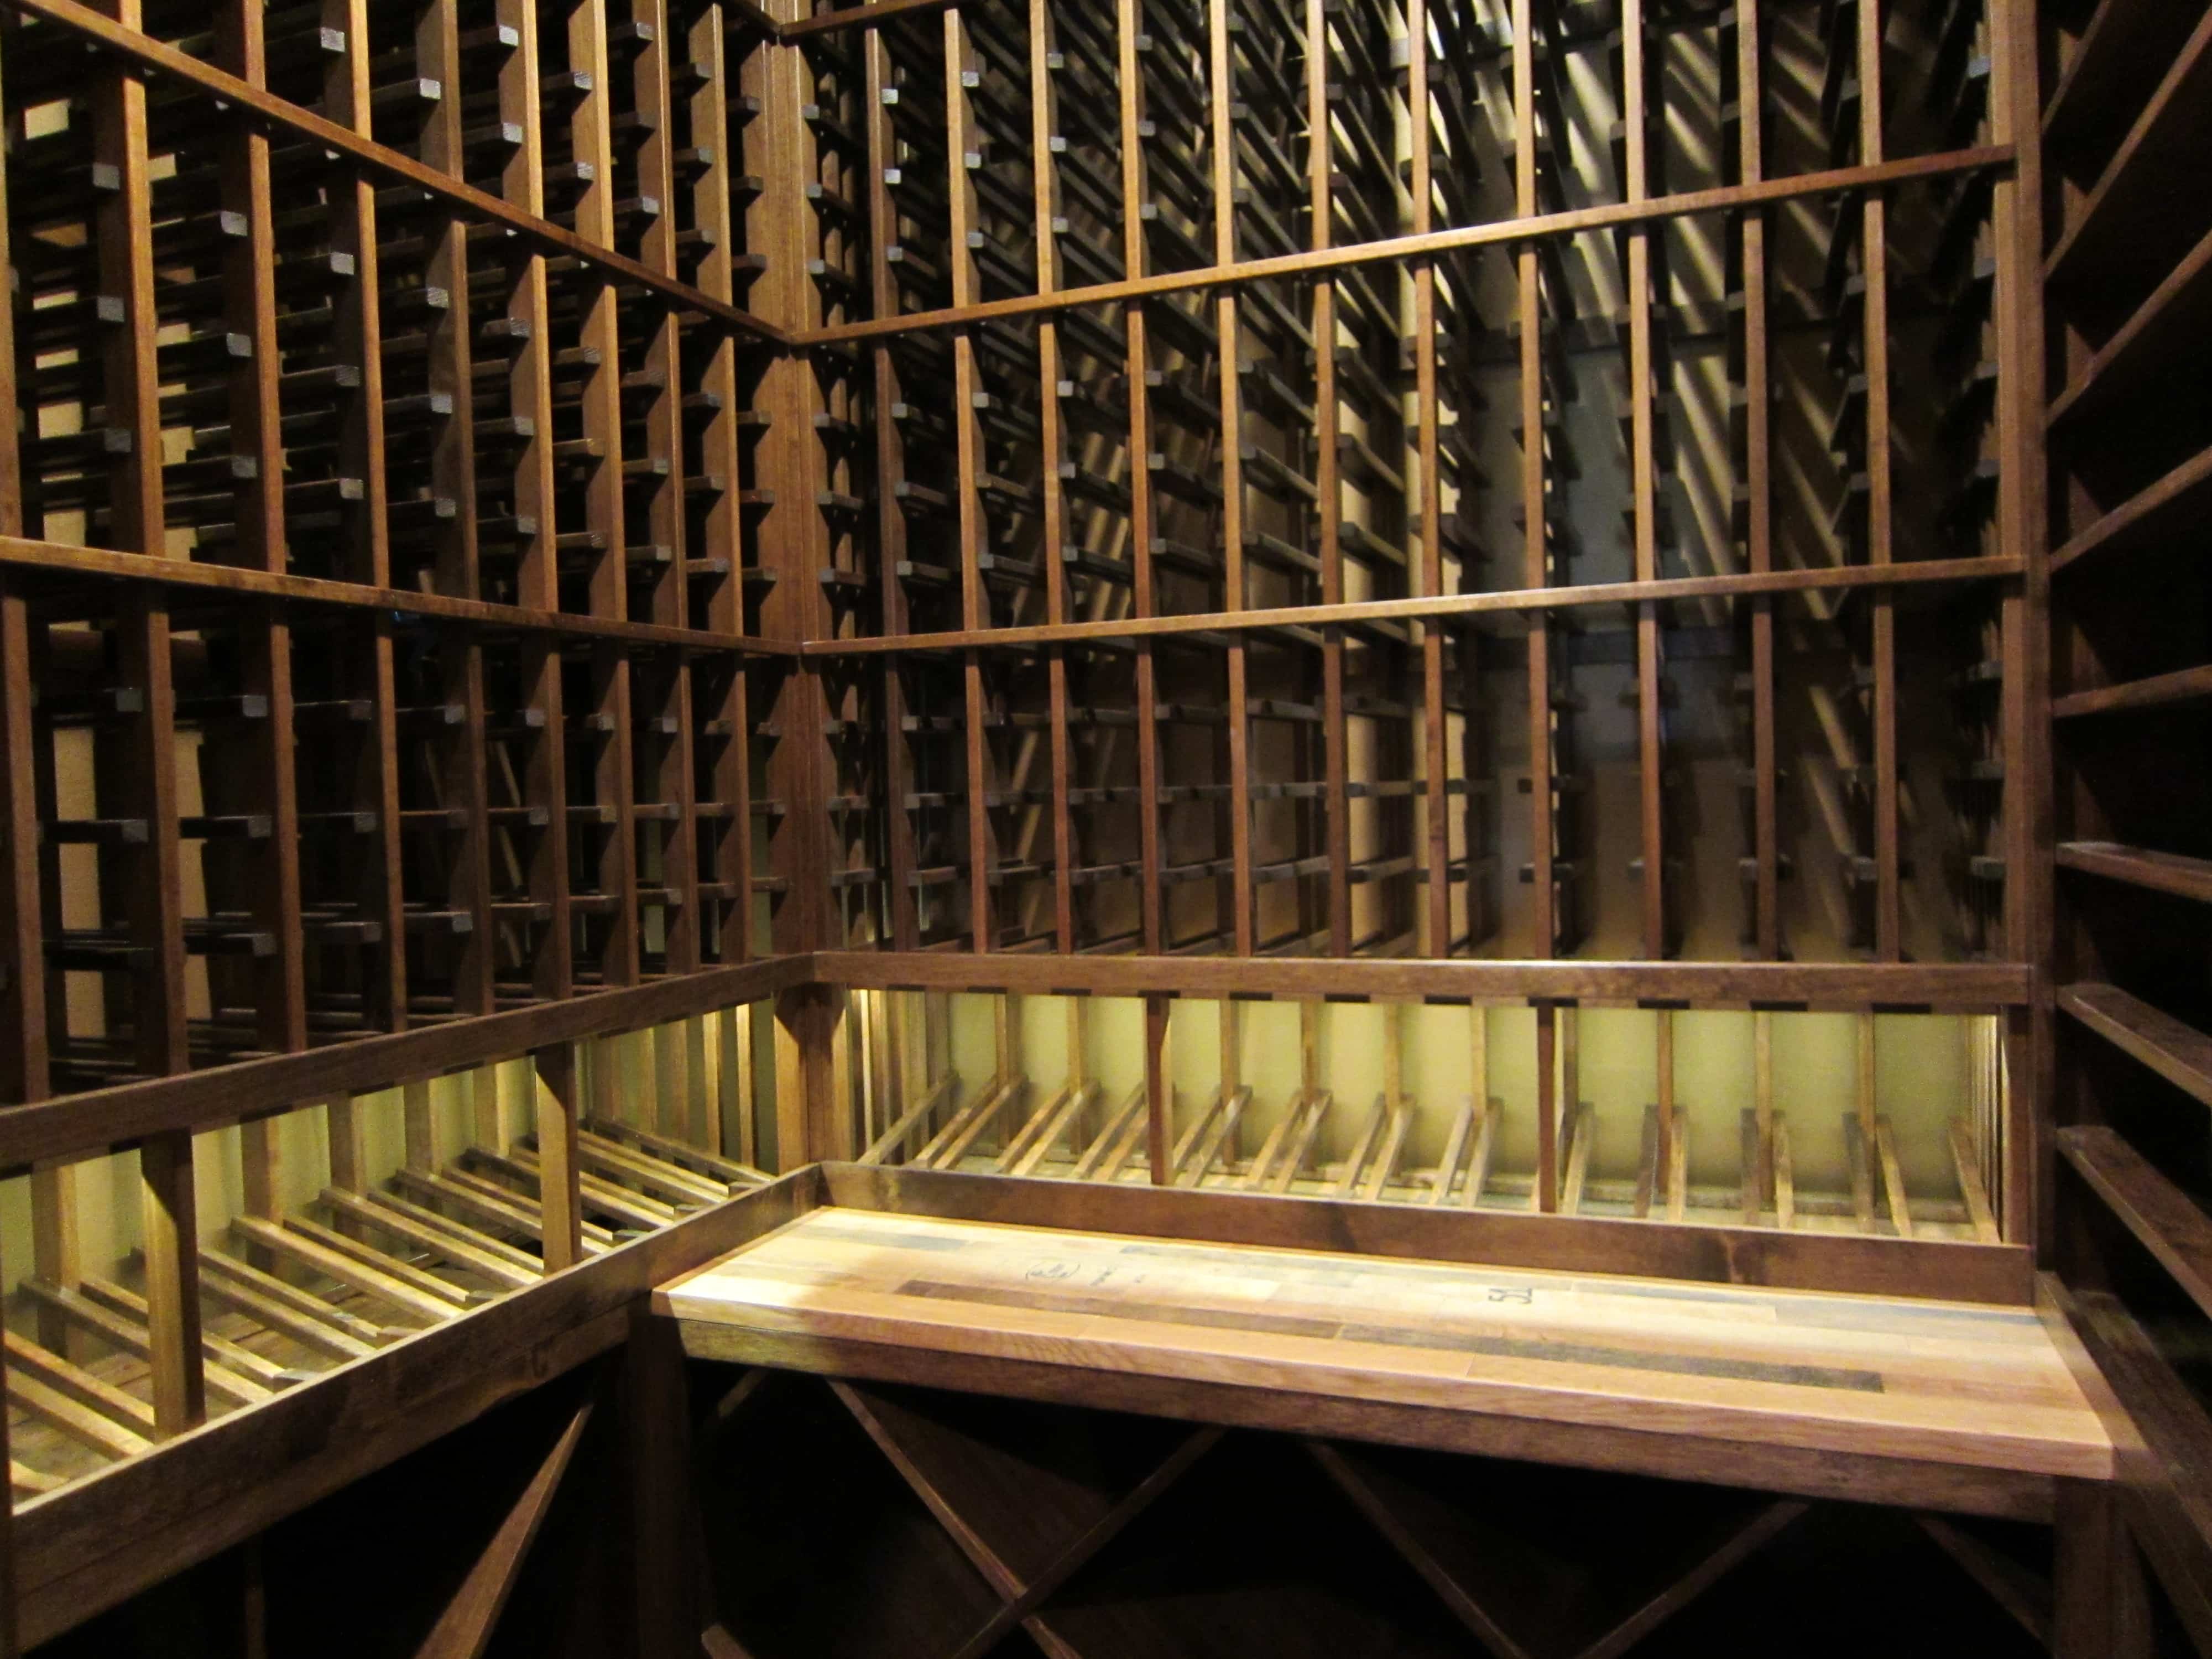 Just how to Build a Wine Cellar Rack